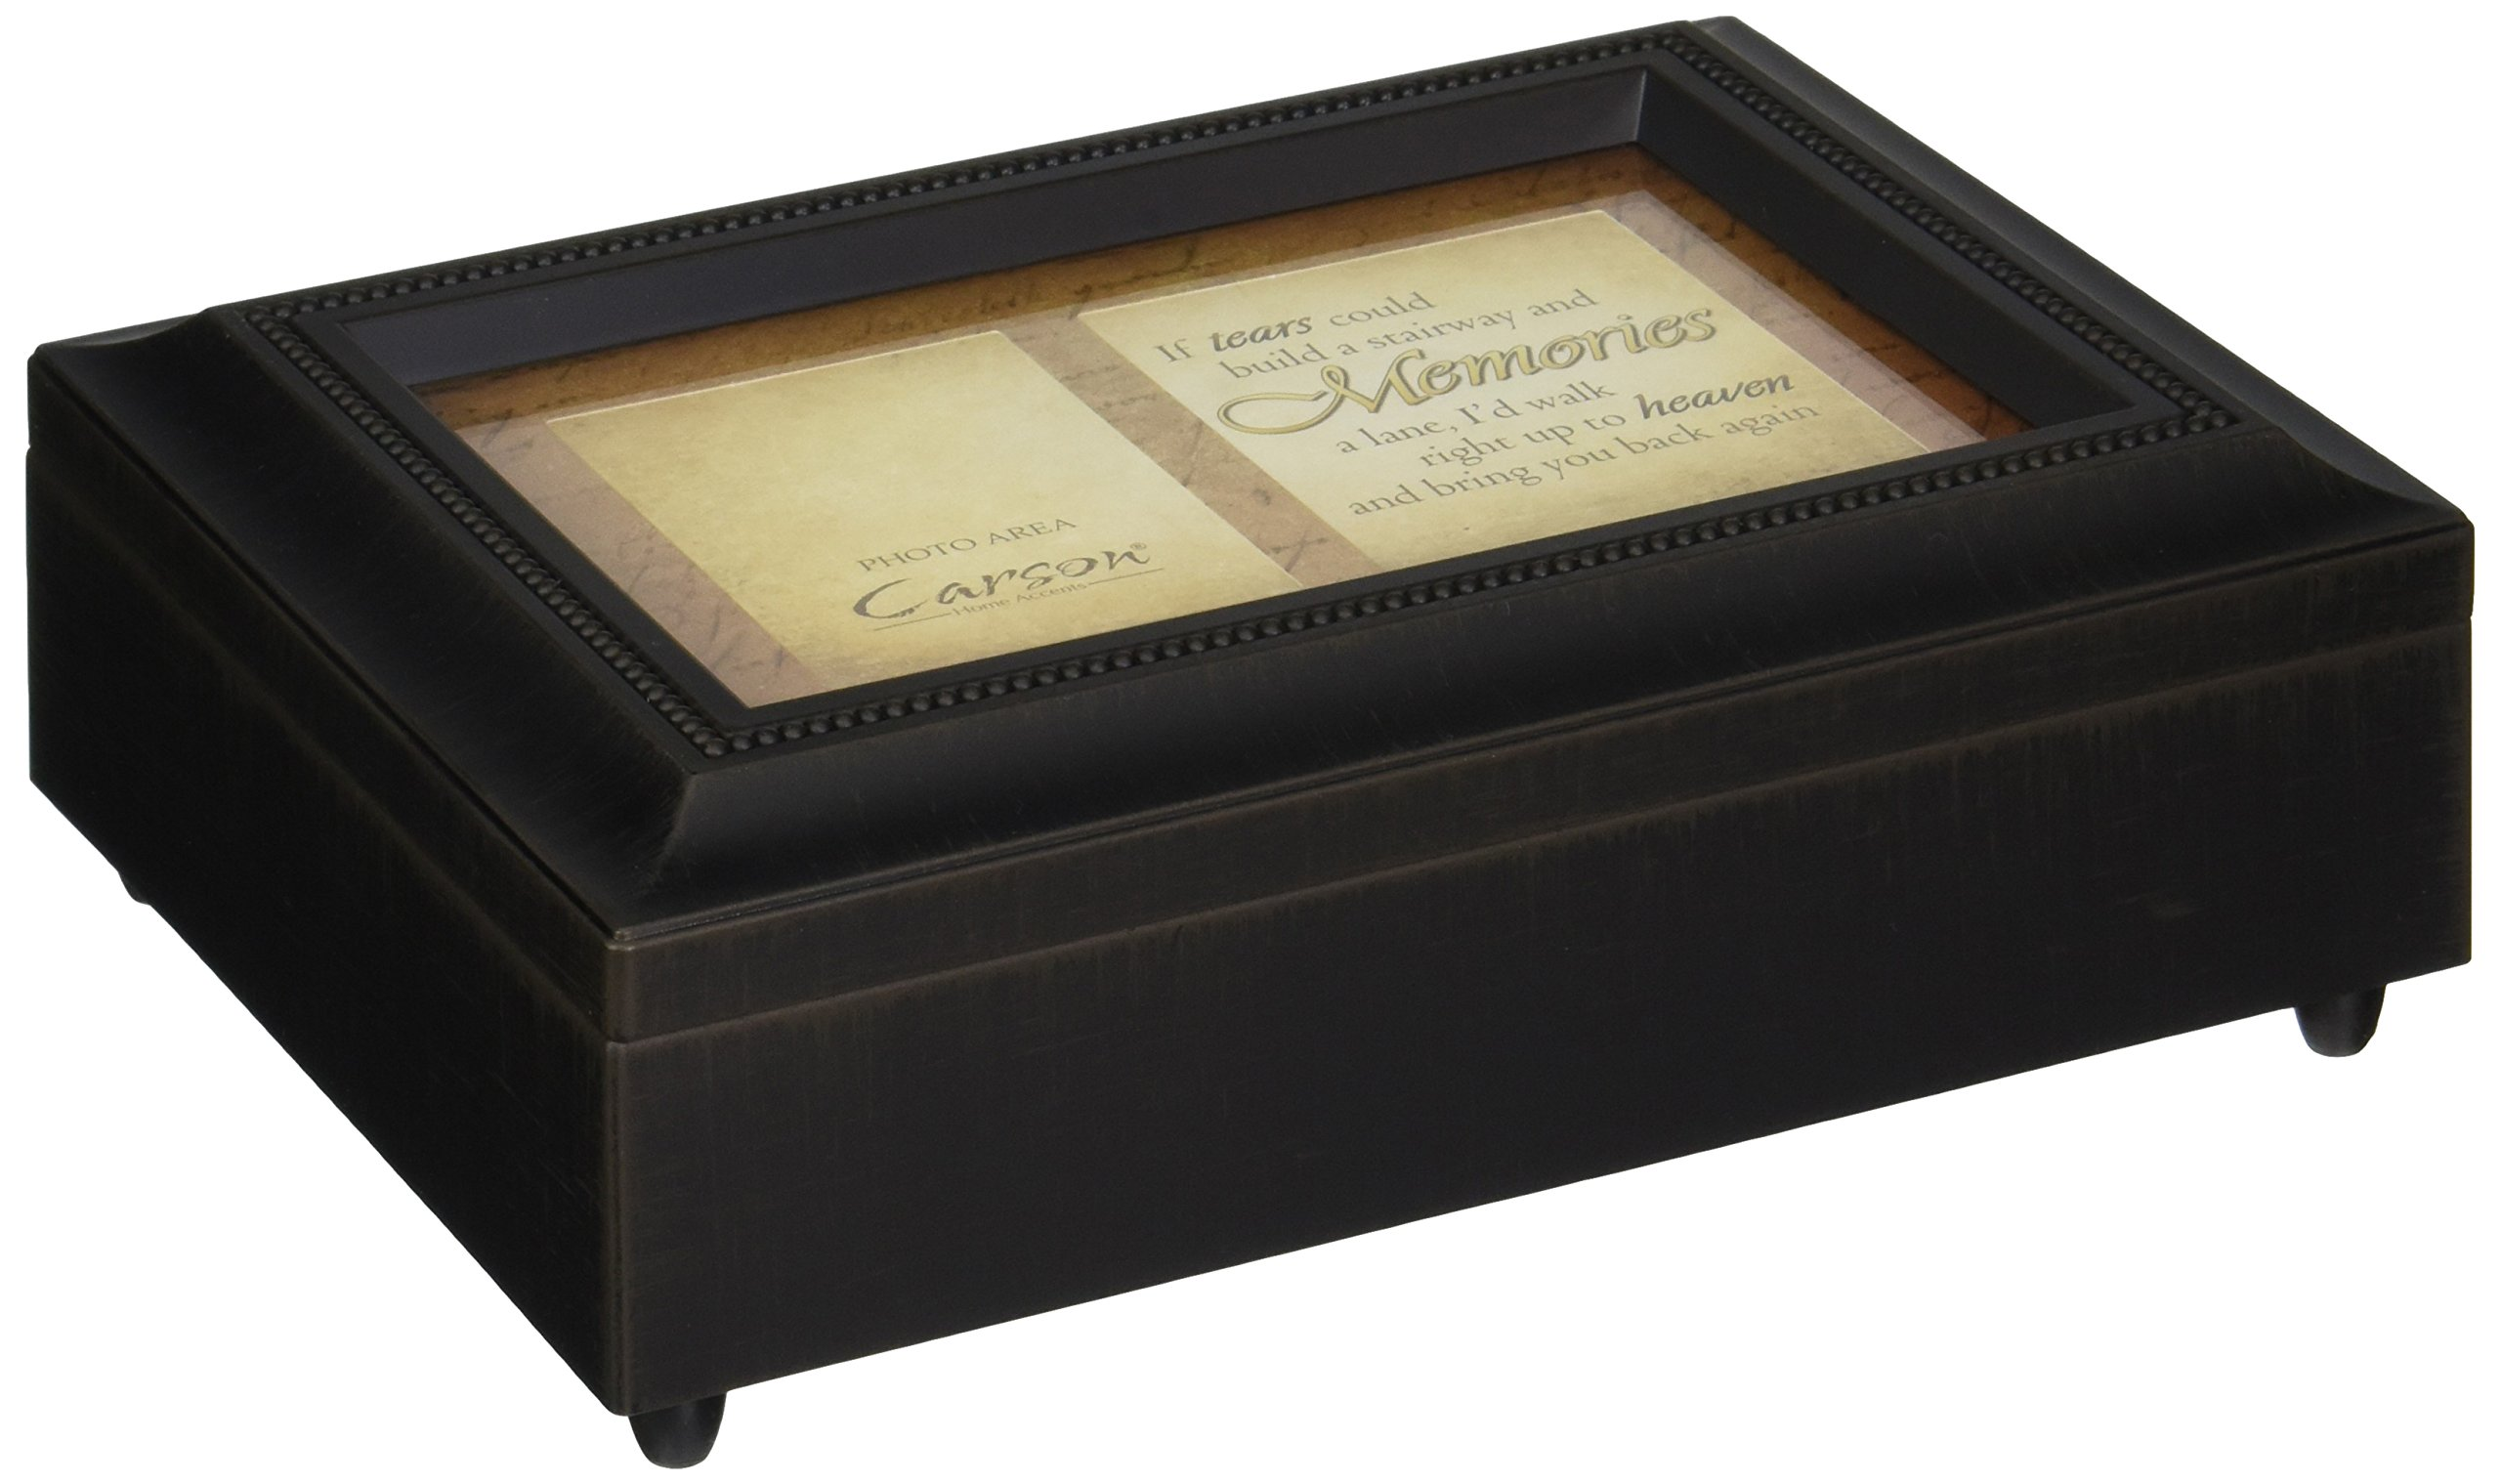 Carson Home Accents 17948 Tears Memories Bereavement Music Box, 8-Inch by 6-Inch by 2-3/4-Inch by Carson